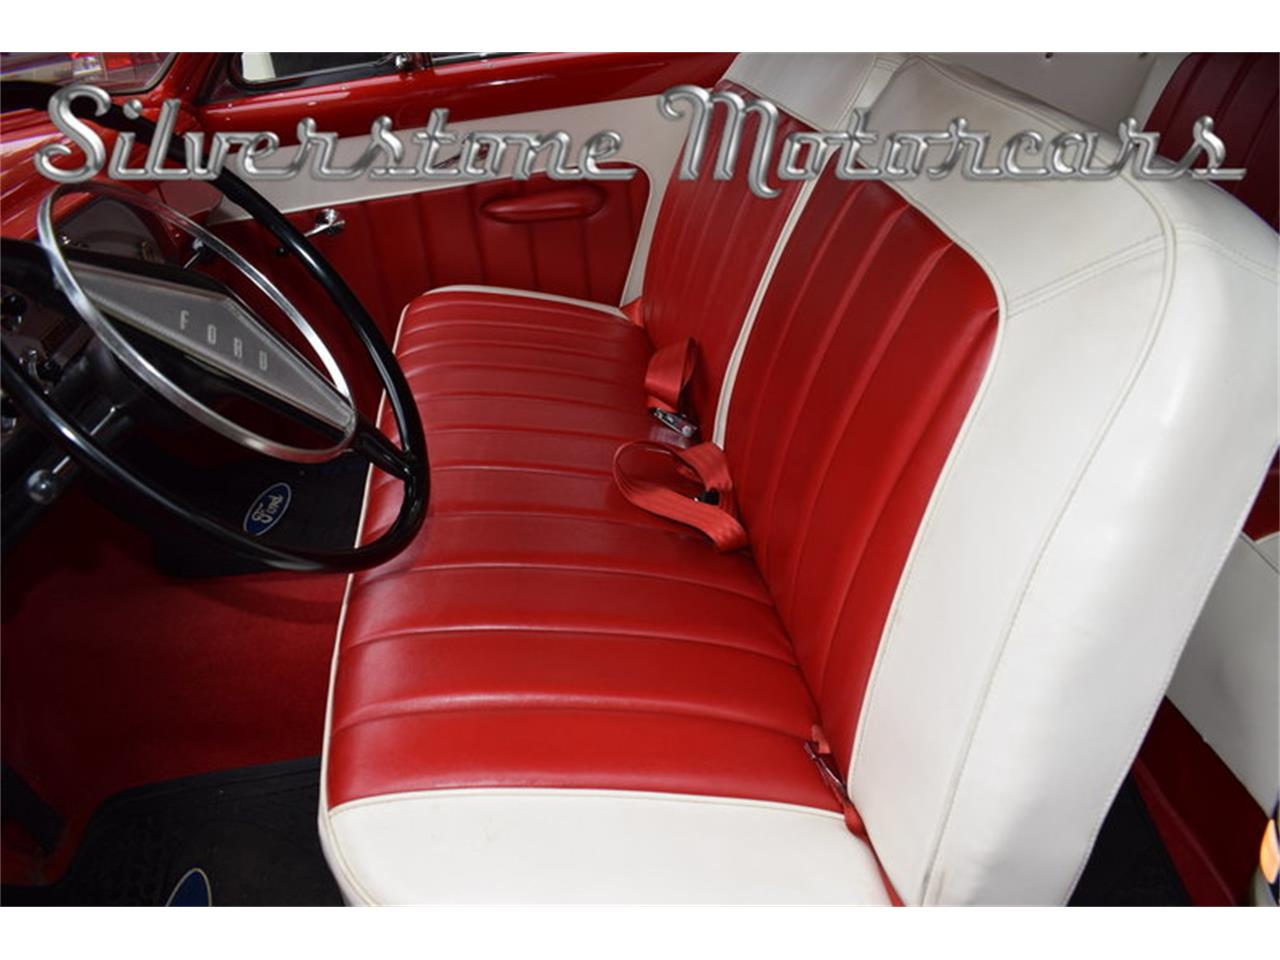 Large Picture of Classic 1951 Ford Custom Deluxe - $39,000.00 - L79S